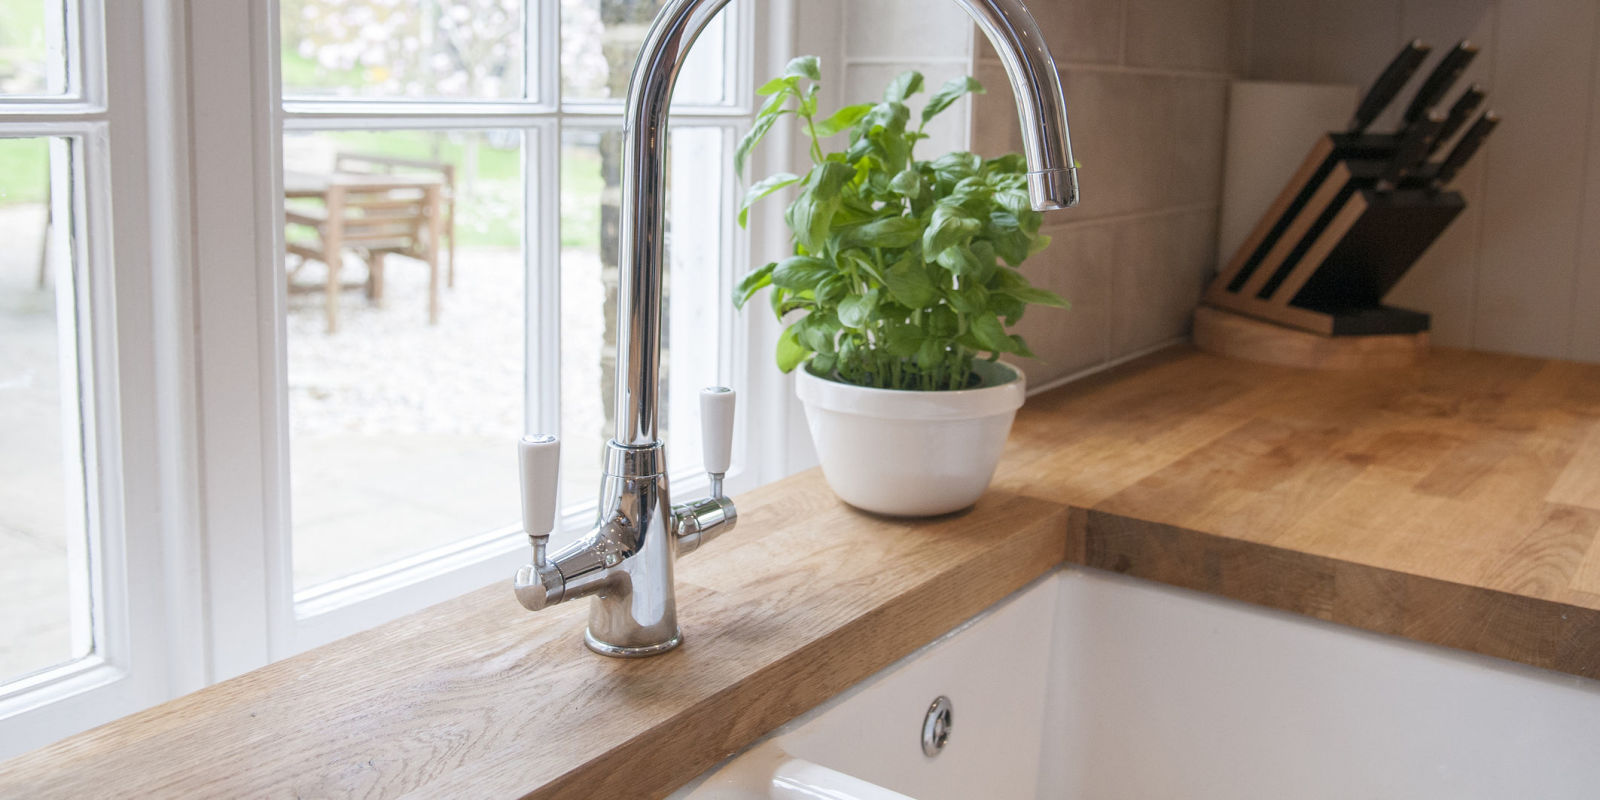 How to revive wooden kitchen worktops How to clean wooden kitchen worktops